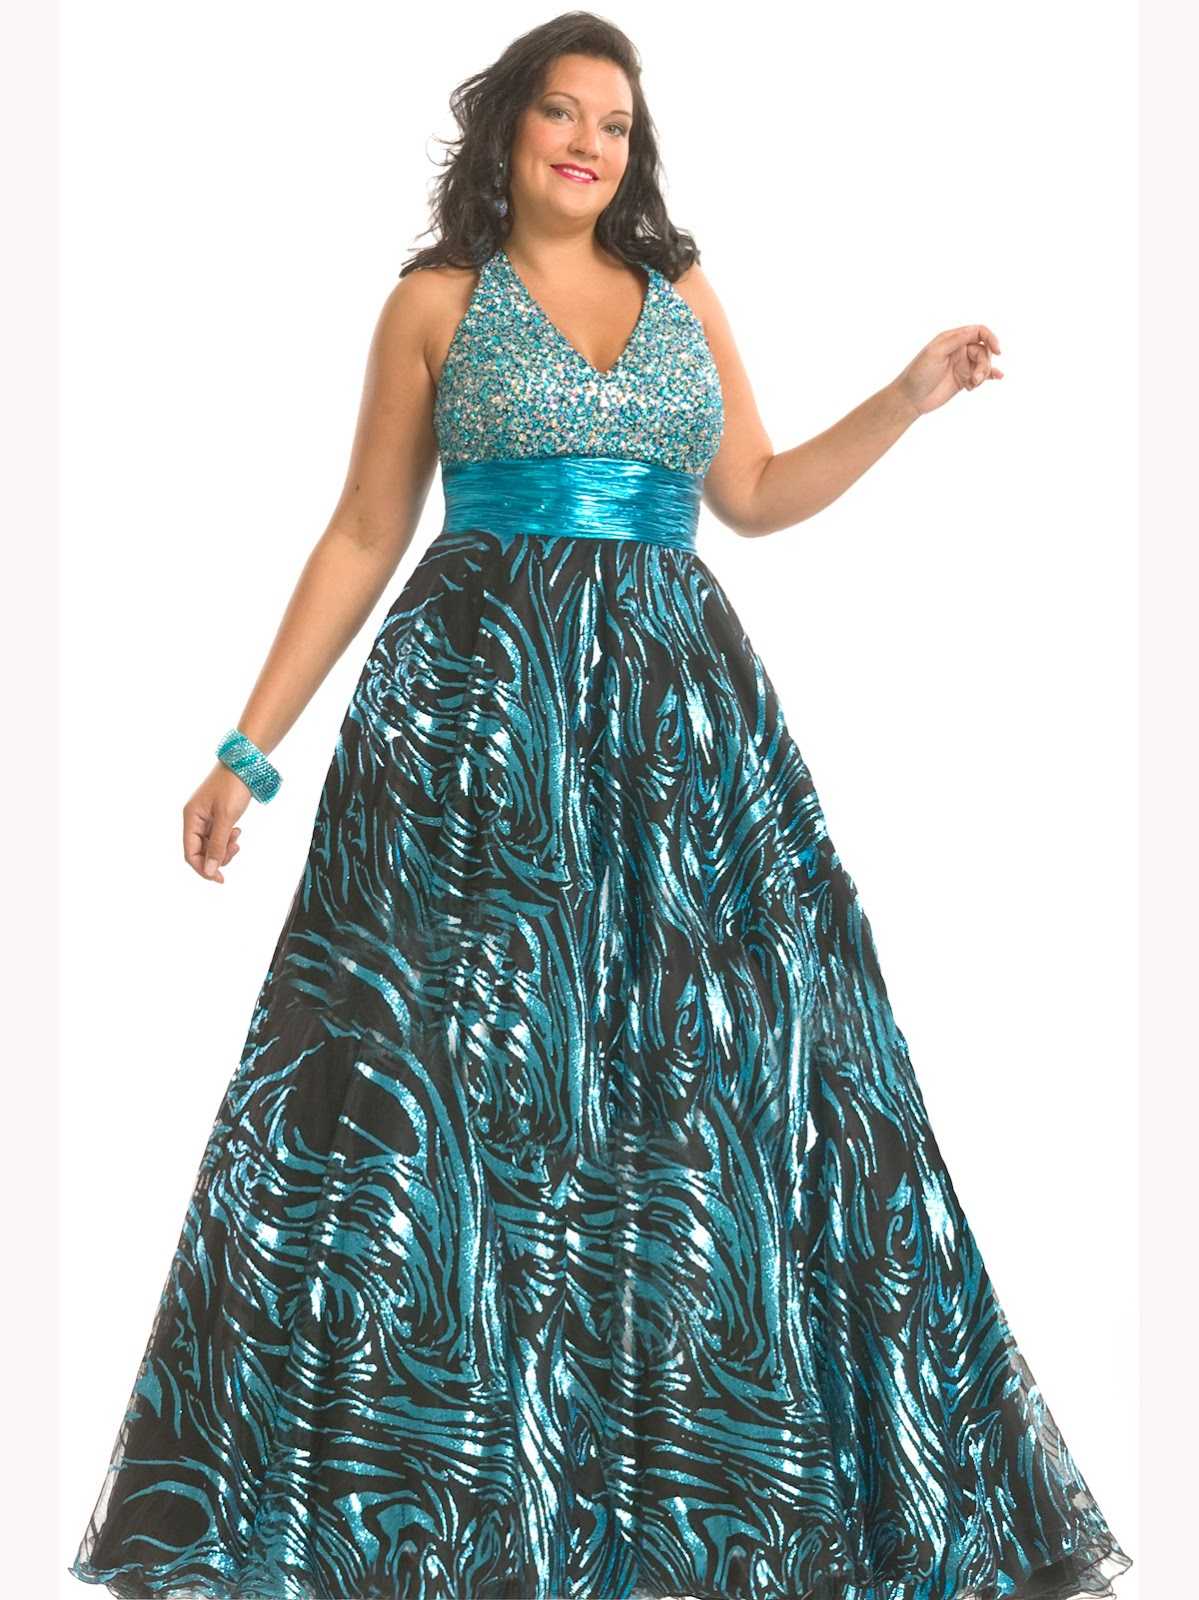 Consignment Shops For Prom Dresses In Louisville Ky - Plus Size Prom ...